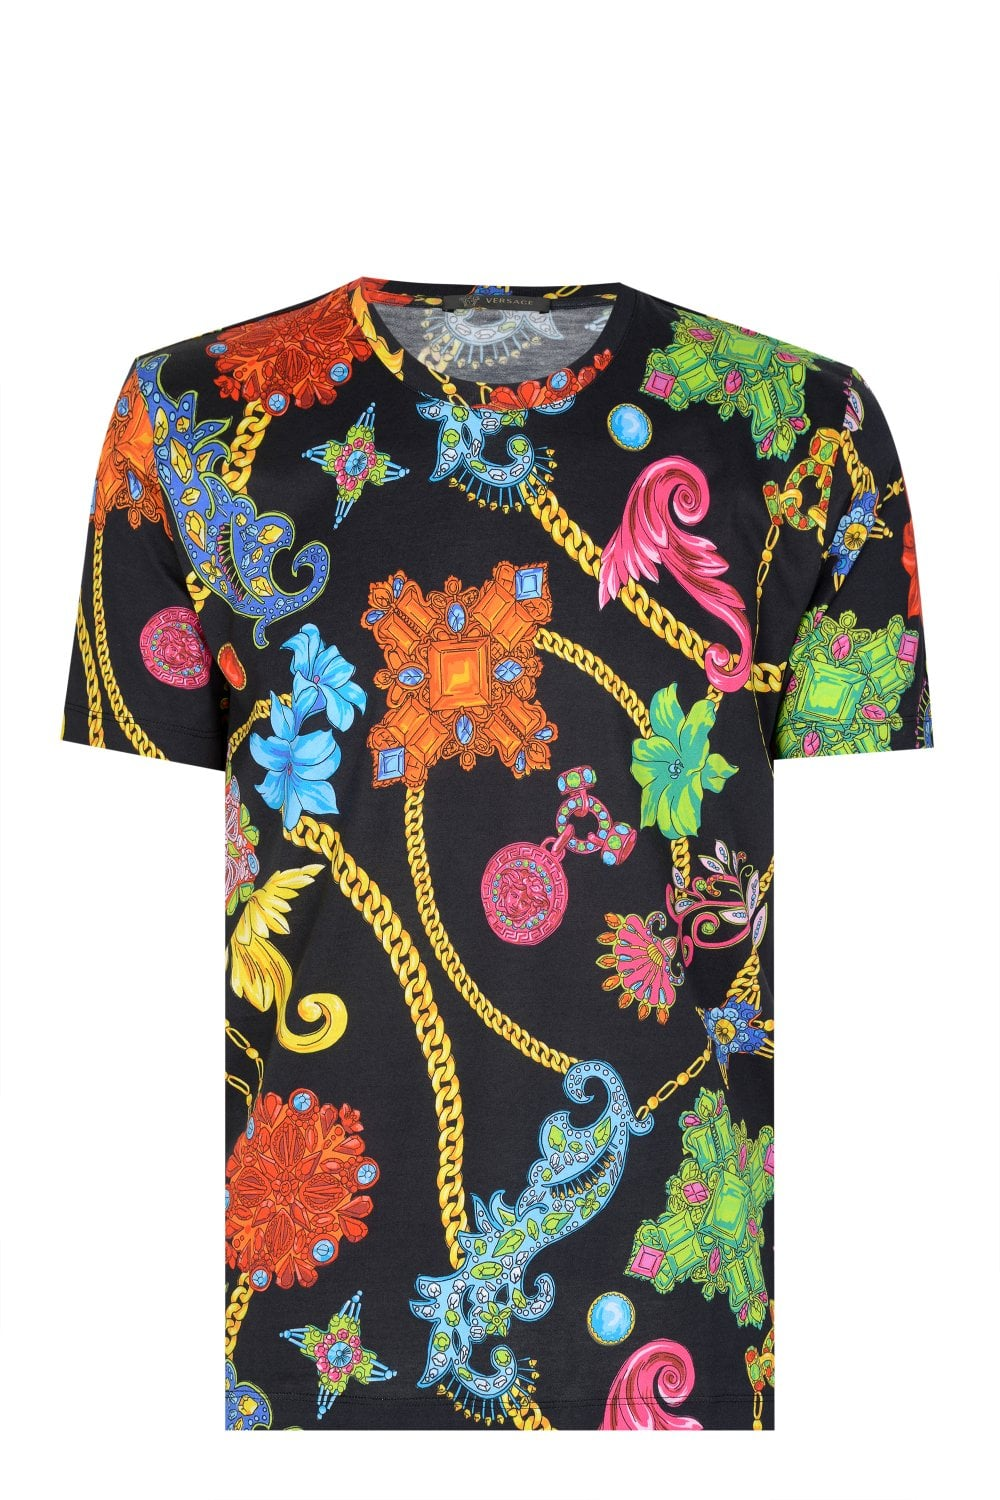 90854aff VERSACE Multi-Colour Floral Print T-shirt - Clothing from Circle Fashion UK